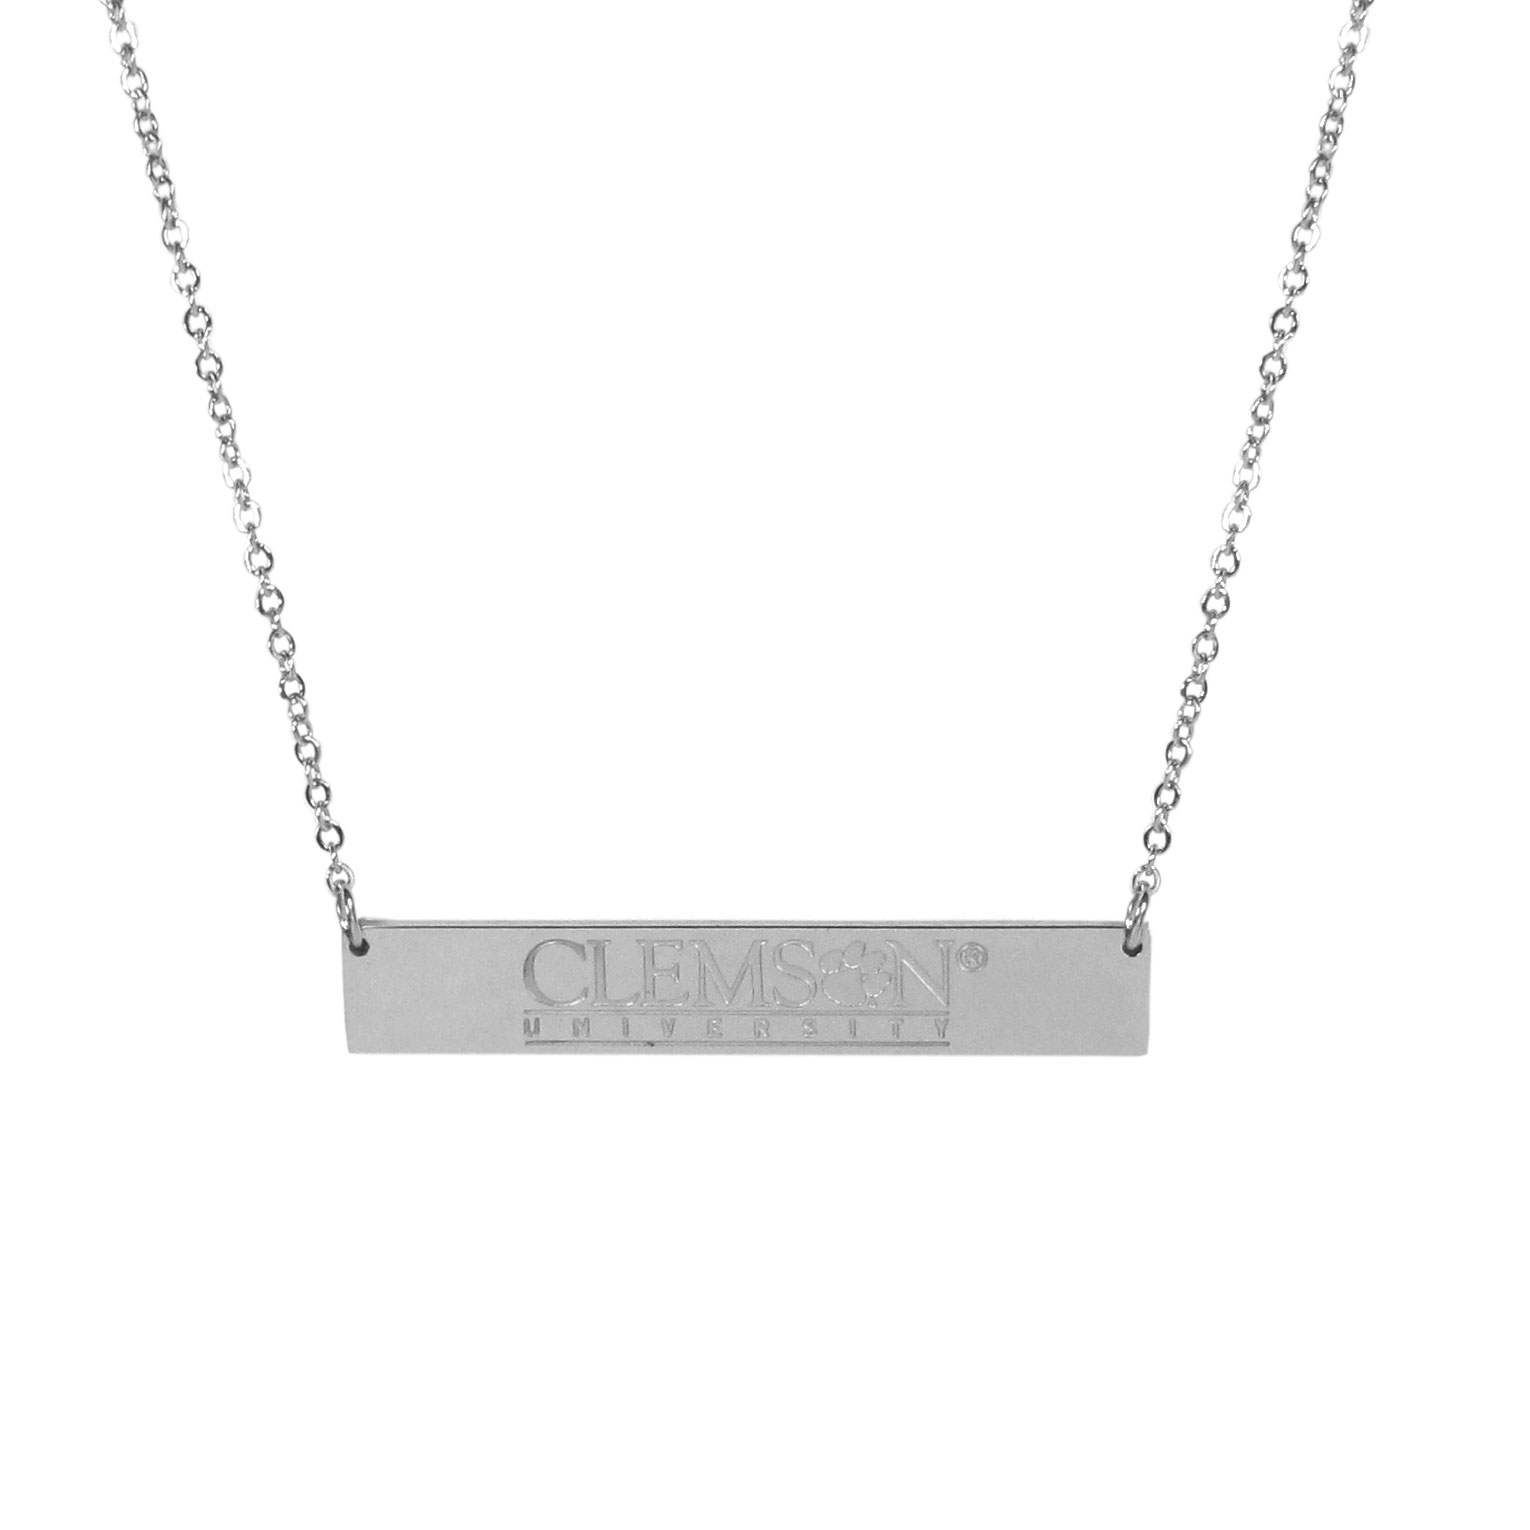 Clemson Tigers Bar Necklace - Simply beautiful Clemson Tigers bar necklace on a 20 inch link chain with 2 inch adjustable extender. This light-weight bar necklace has a stylish silver colored finish with the team name expertly etched on the 1.5 inch bar. Every female  fan will enjoy this contempory fashion accessory.